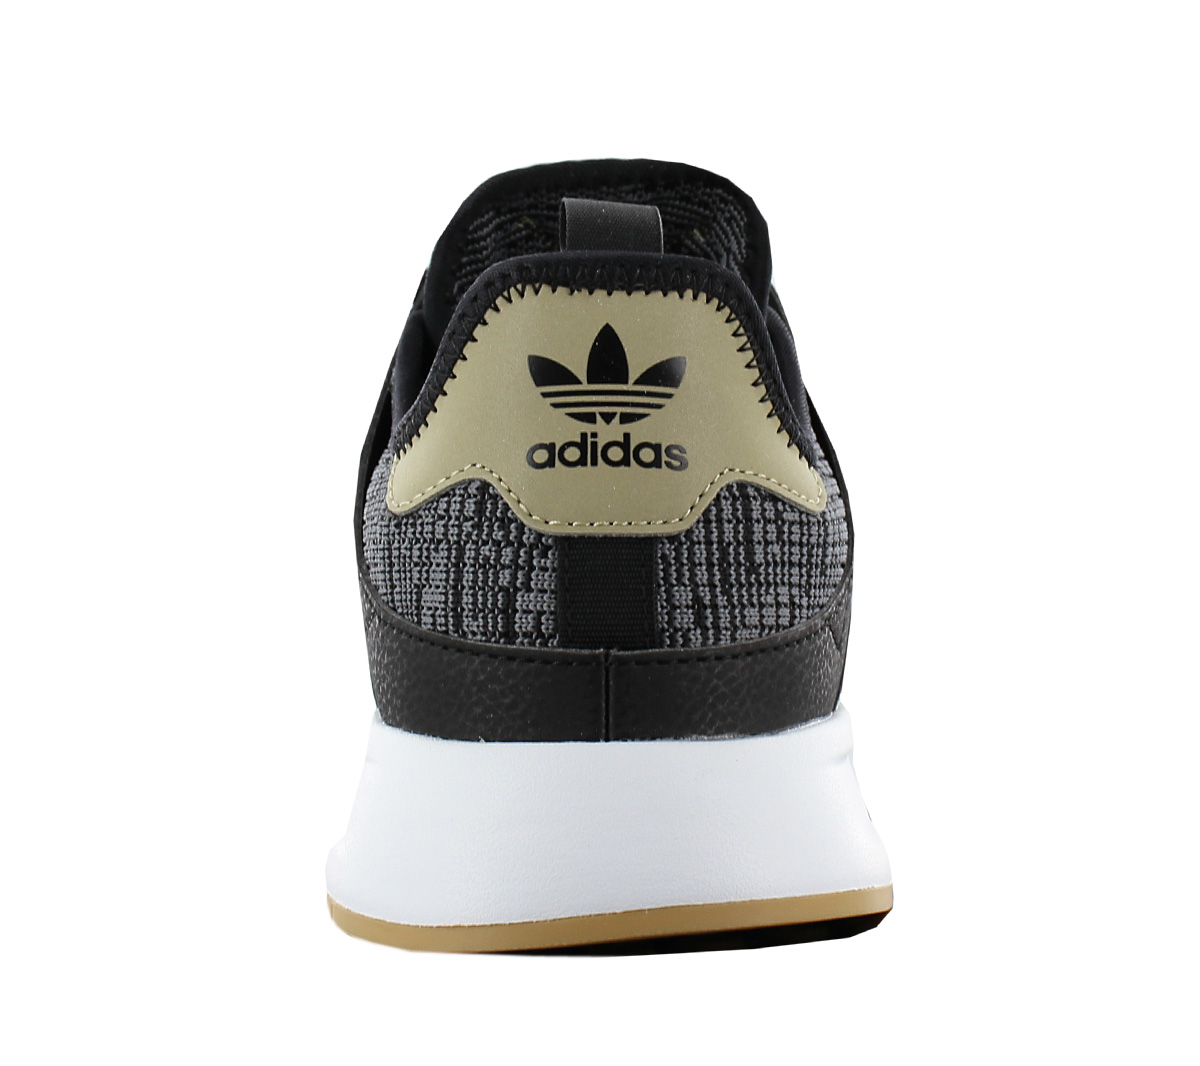 3a62ae27f1ad Adidas Originals x PLR Men s Sneakers Shoes Textile Sneakers Leisure ...